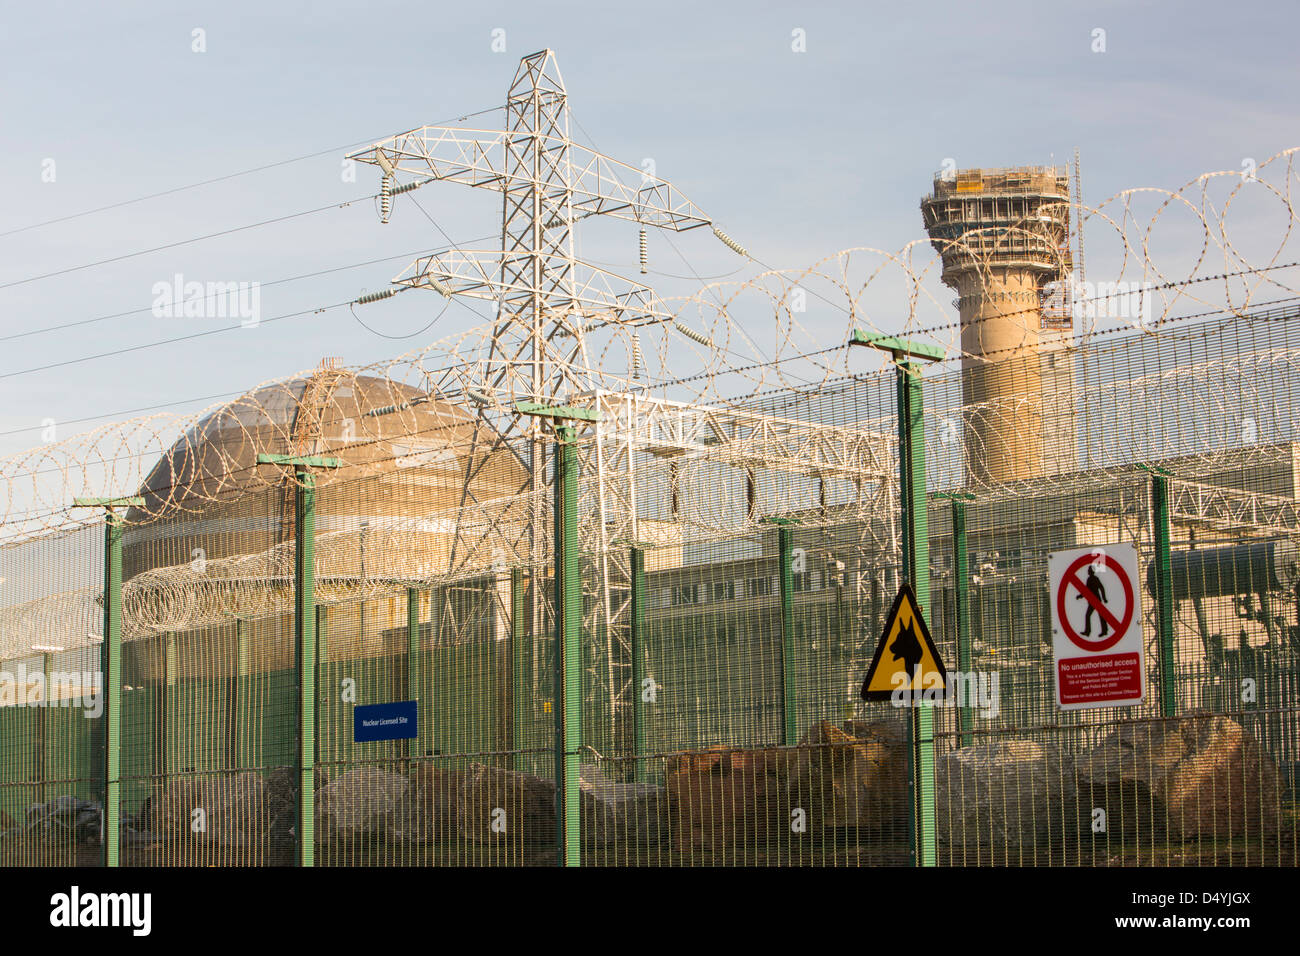 The nuclear reactor capped off at Sellafield nuclear power station following the 1957 disastrous fire. - Stock Image